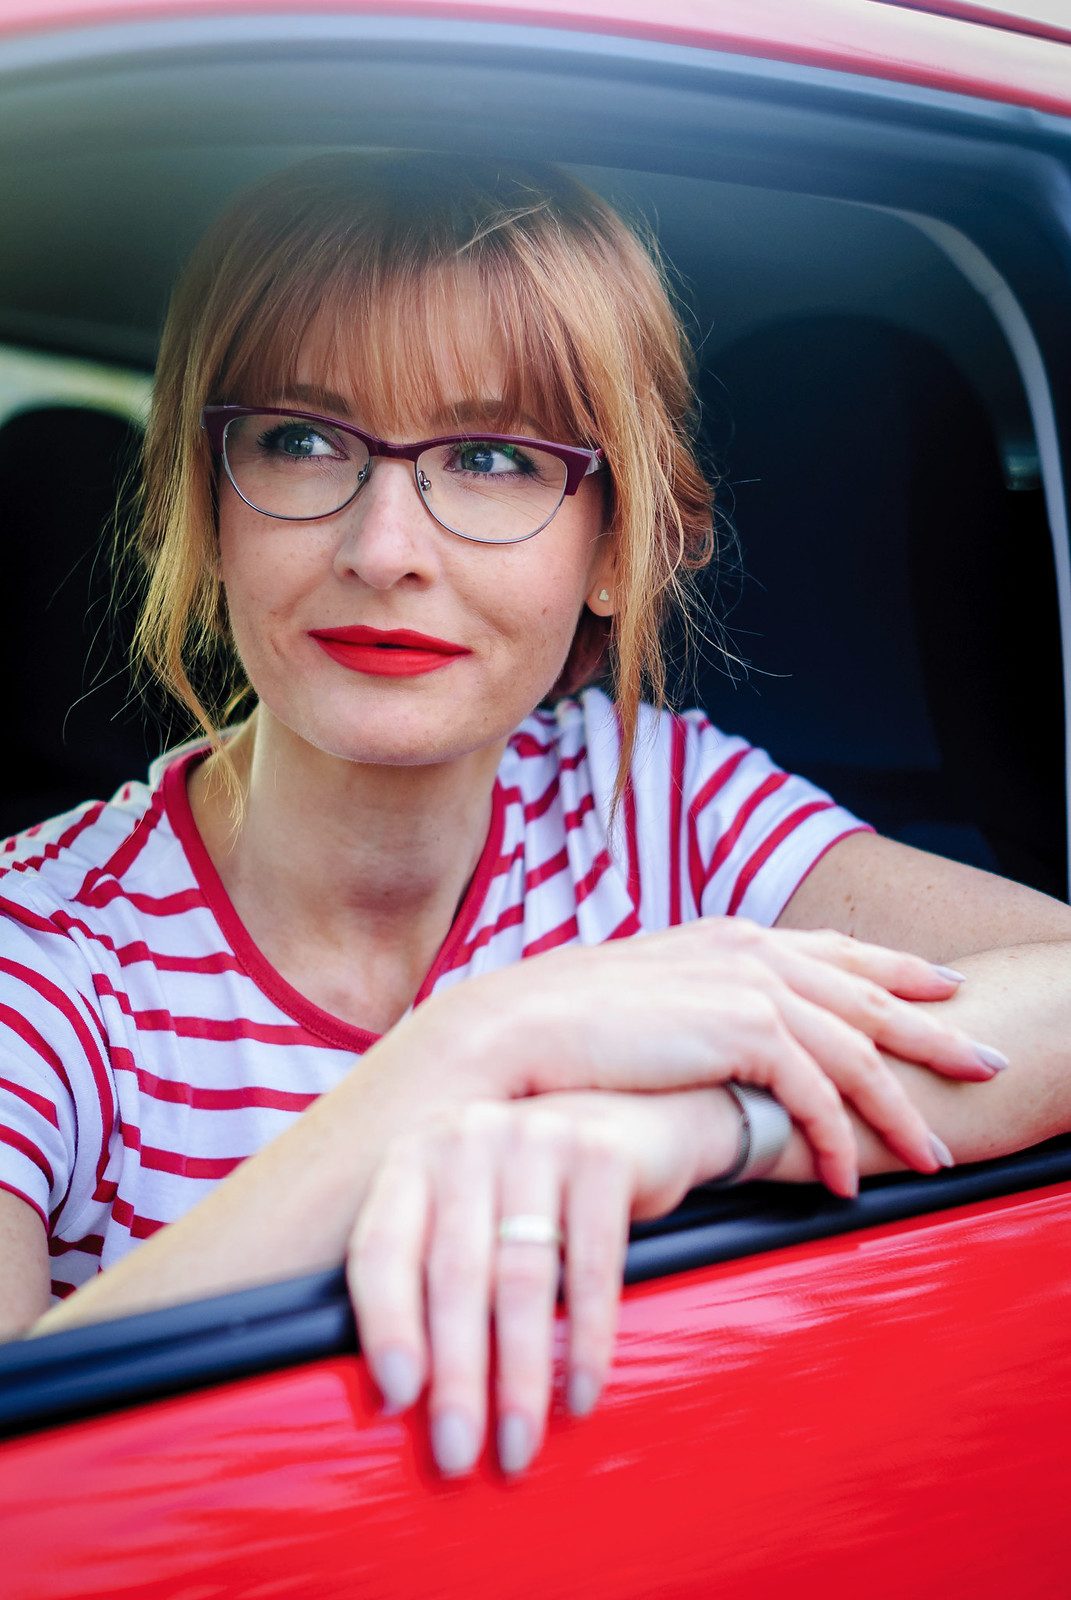 Kenmark eyewear: Spring /summer outfit with on-trend readers \ reading glasses | Not Dressed As Lamb, over 40 style